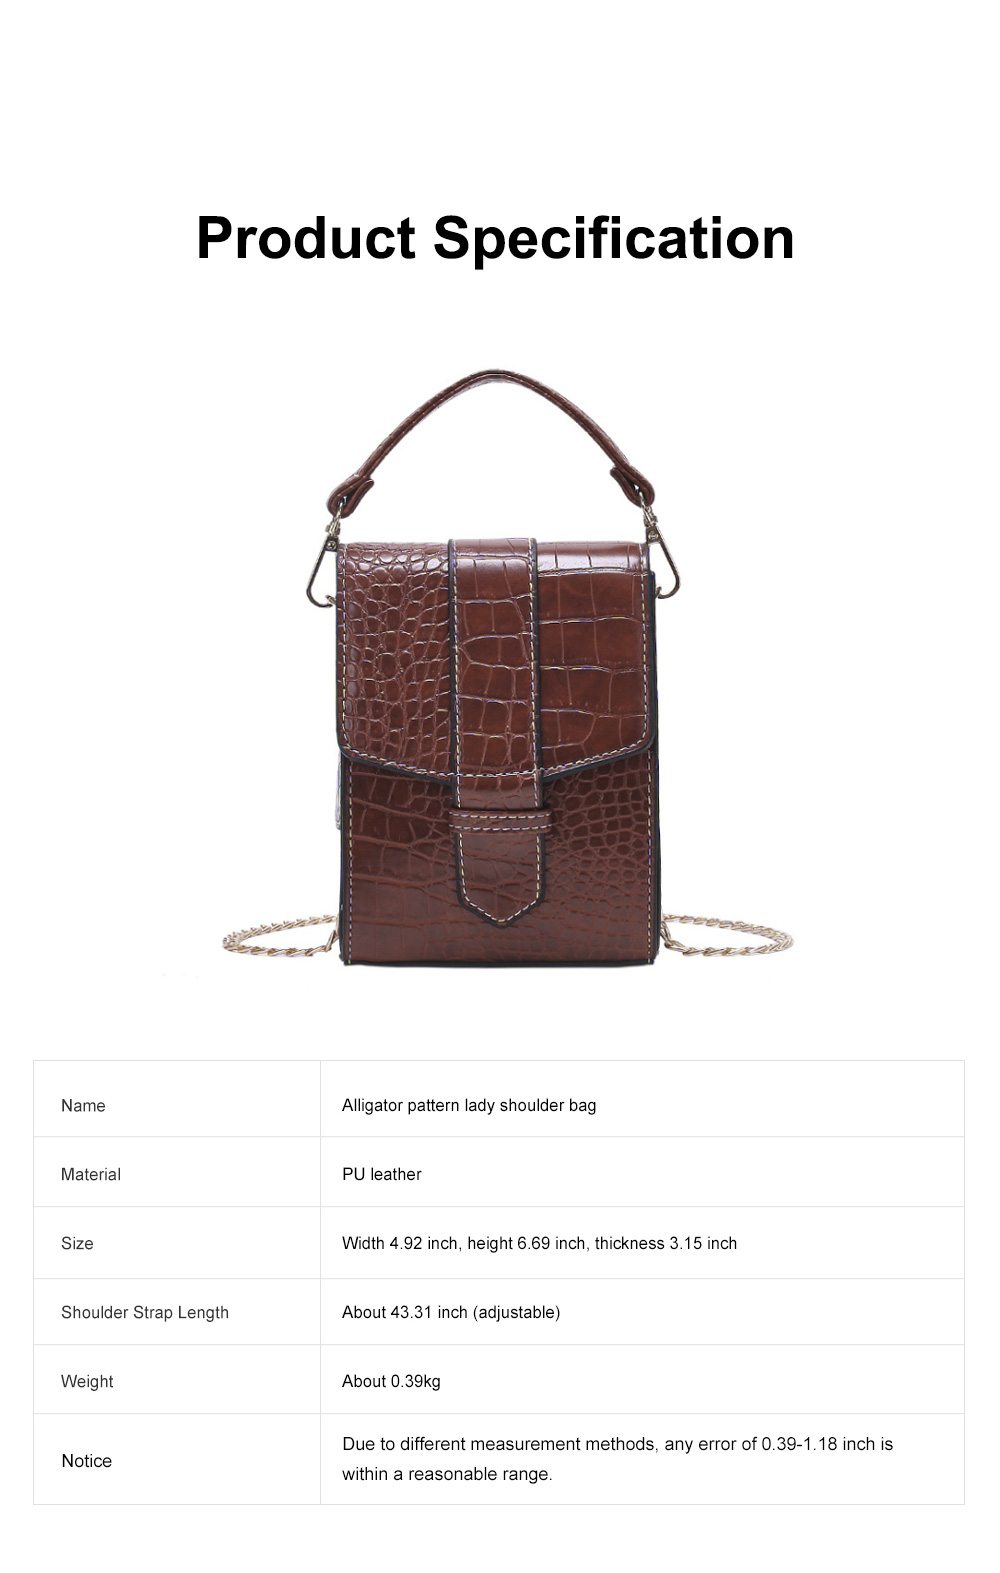 Minimalist Alligator Pattern Chain Lady Shoulder Bag, Skin-friendly PU Leather Small Handle Bag for Women 6